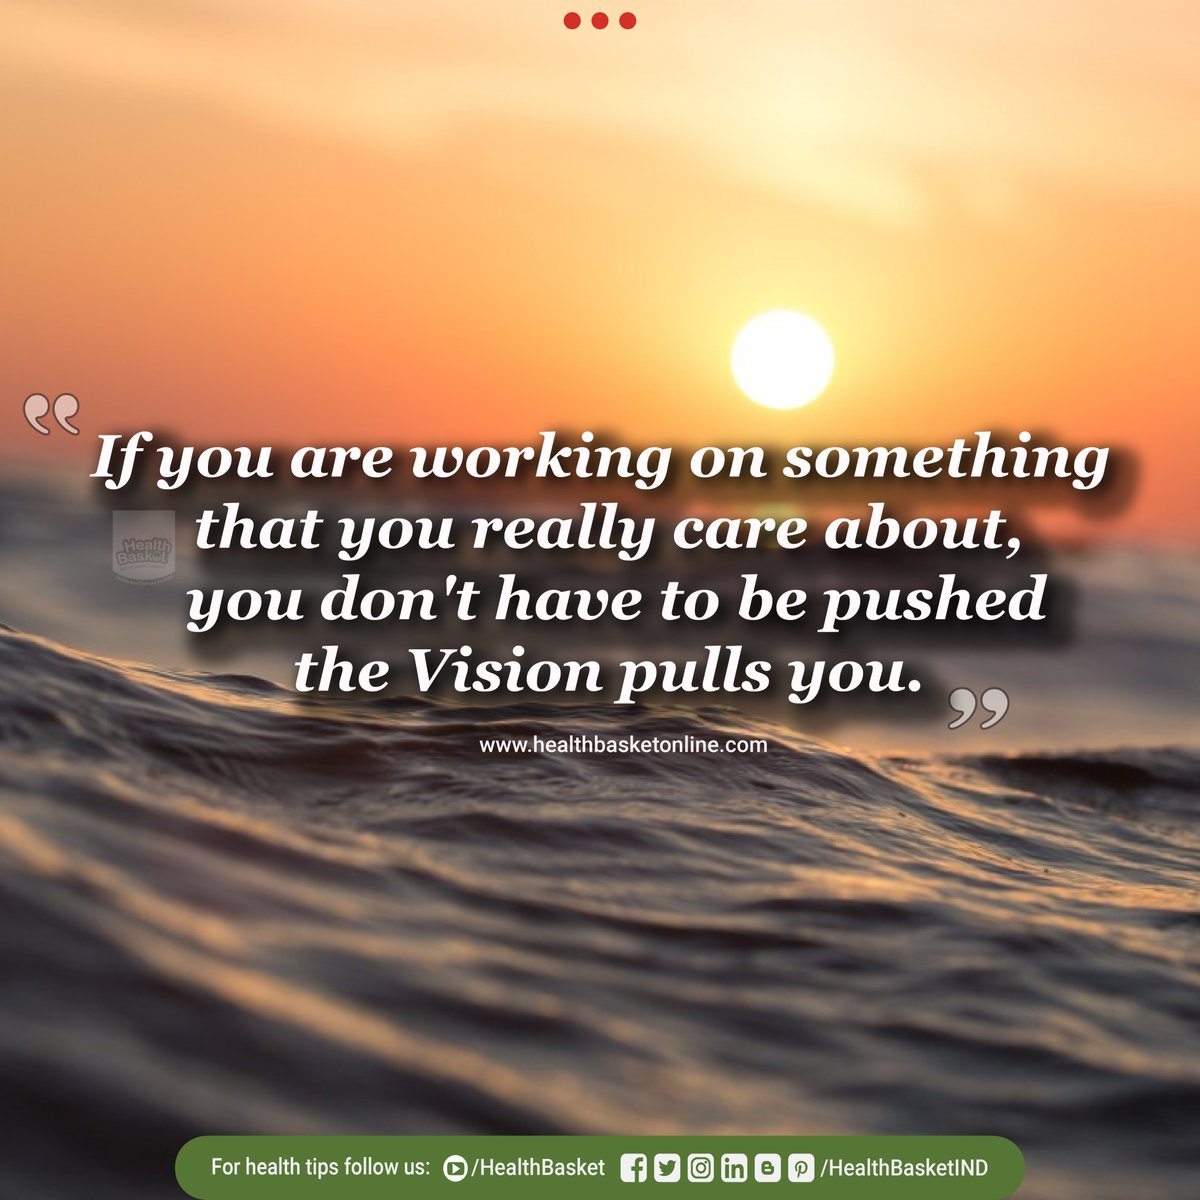 If you are working on something that you really care about, you don't have to be pushed the vision will pull you! Happy Evening!!!! #mondaymotivation #mondaymotivatonquotes #mondayquote #mondayquotes #mondaymorning #mondayvibes #mondaymood #mondaymantra